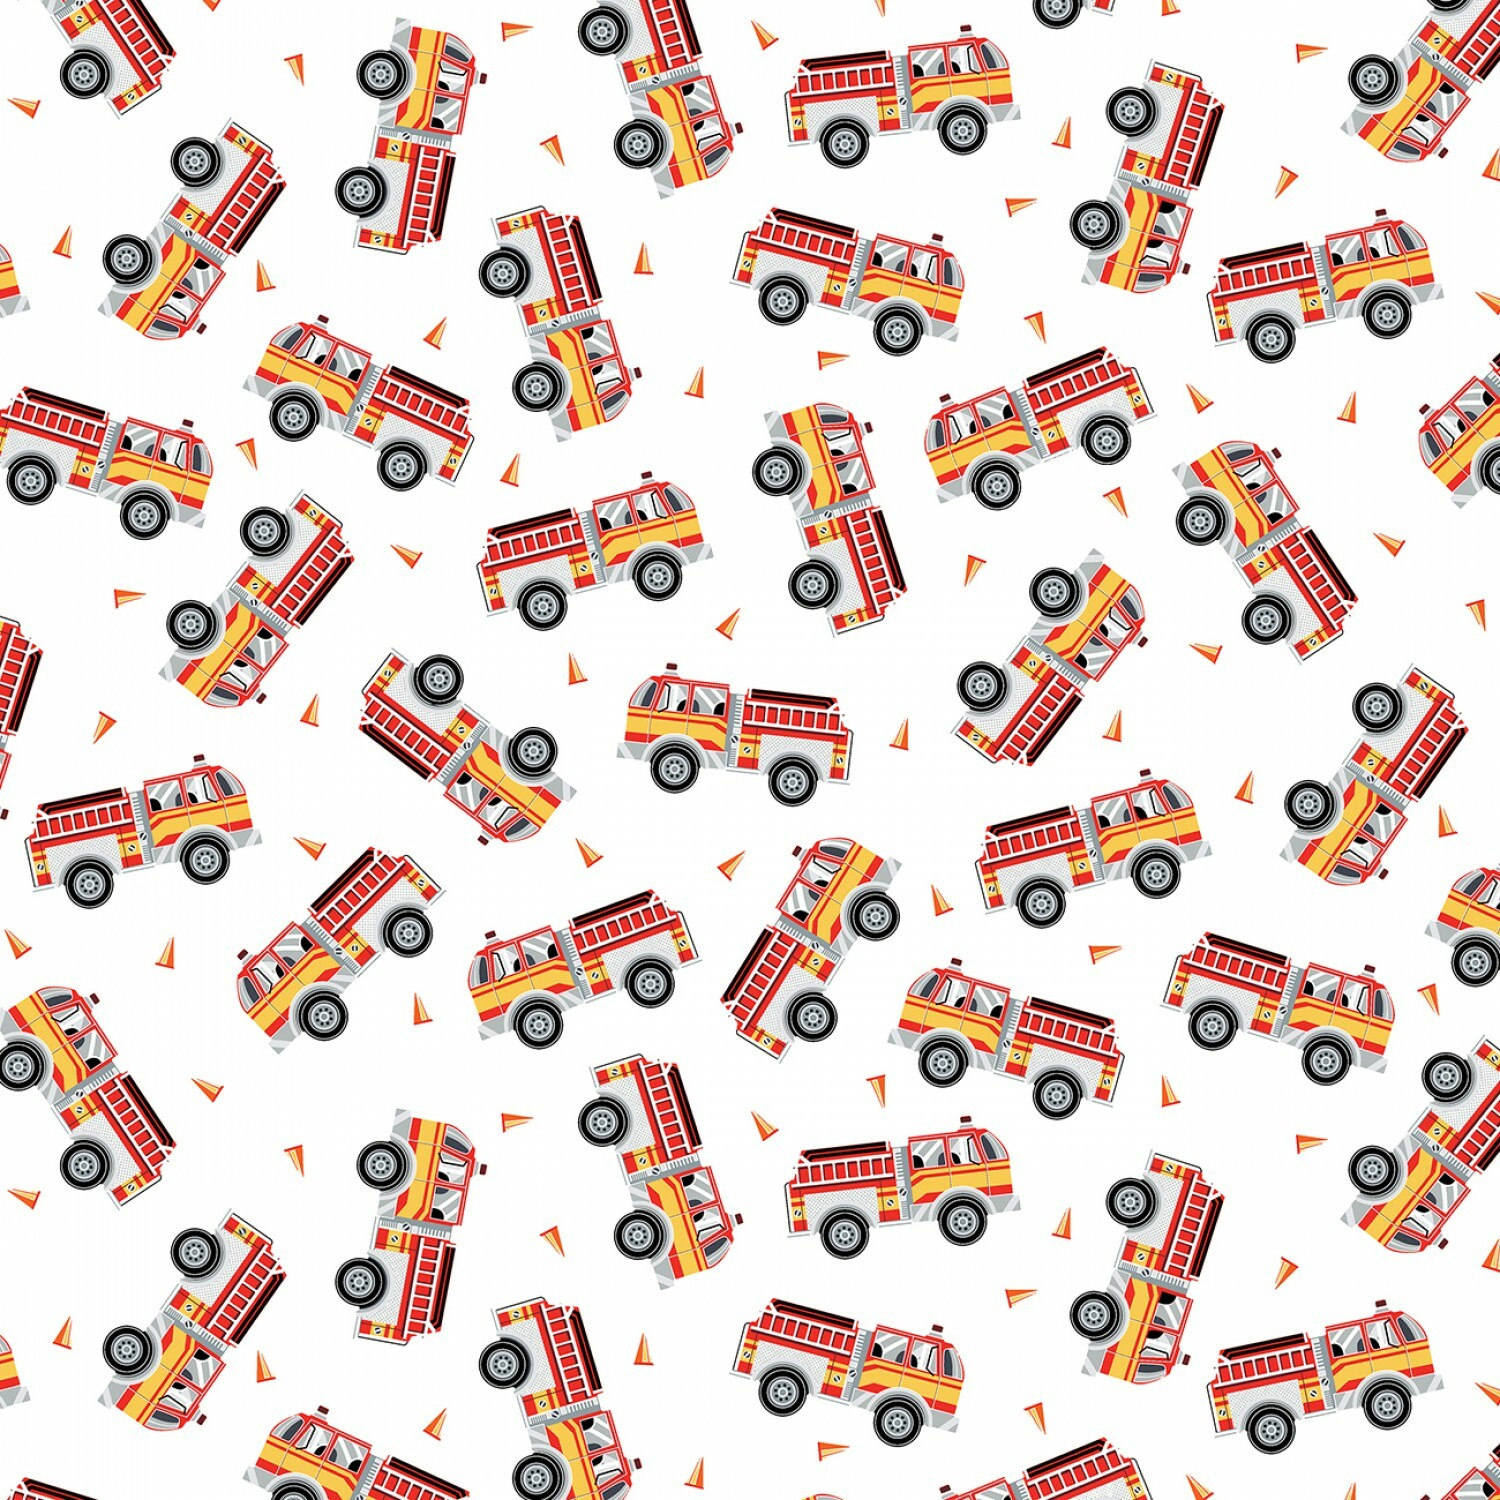 Fire Trucks on White - GLOW IN THE DARK Fabric - 1/2m cut 56650